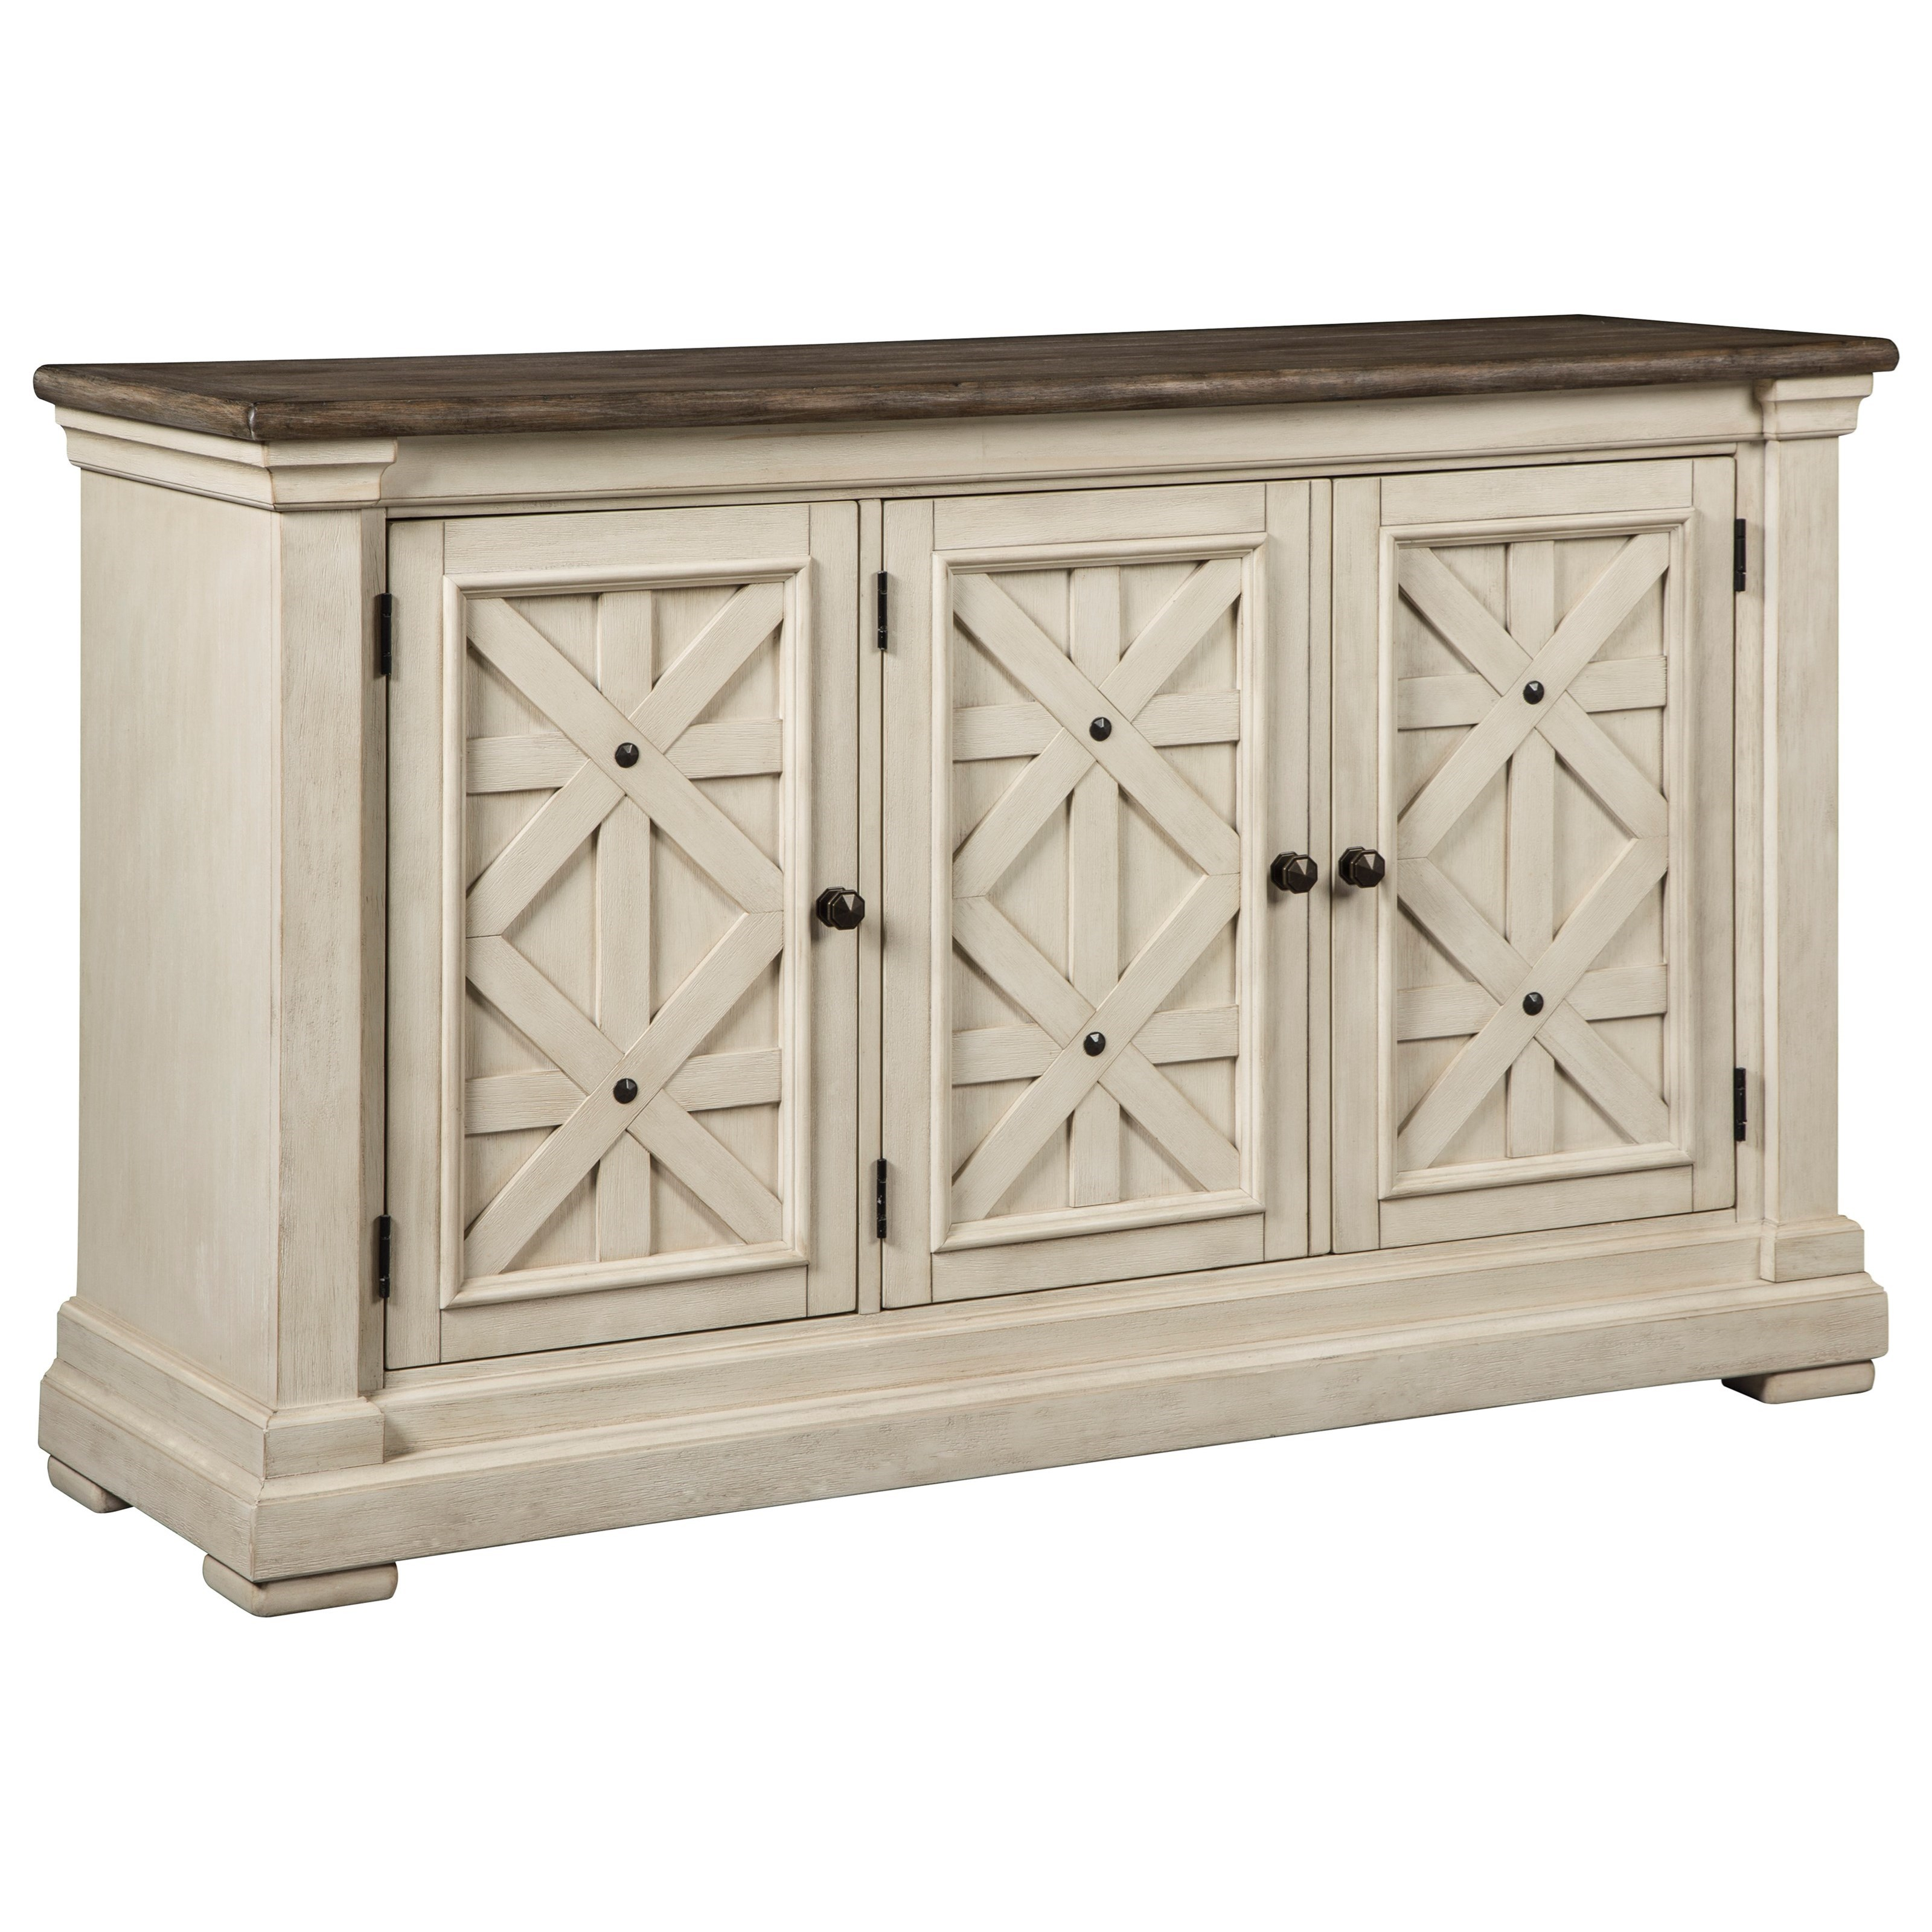 Bolanburg Dining Room Server by Ashley (Signature Design) at Johnny Janosik